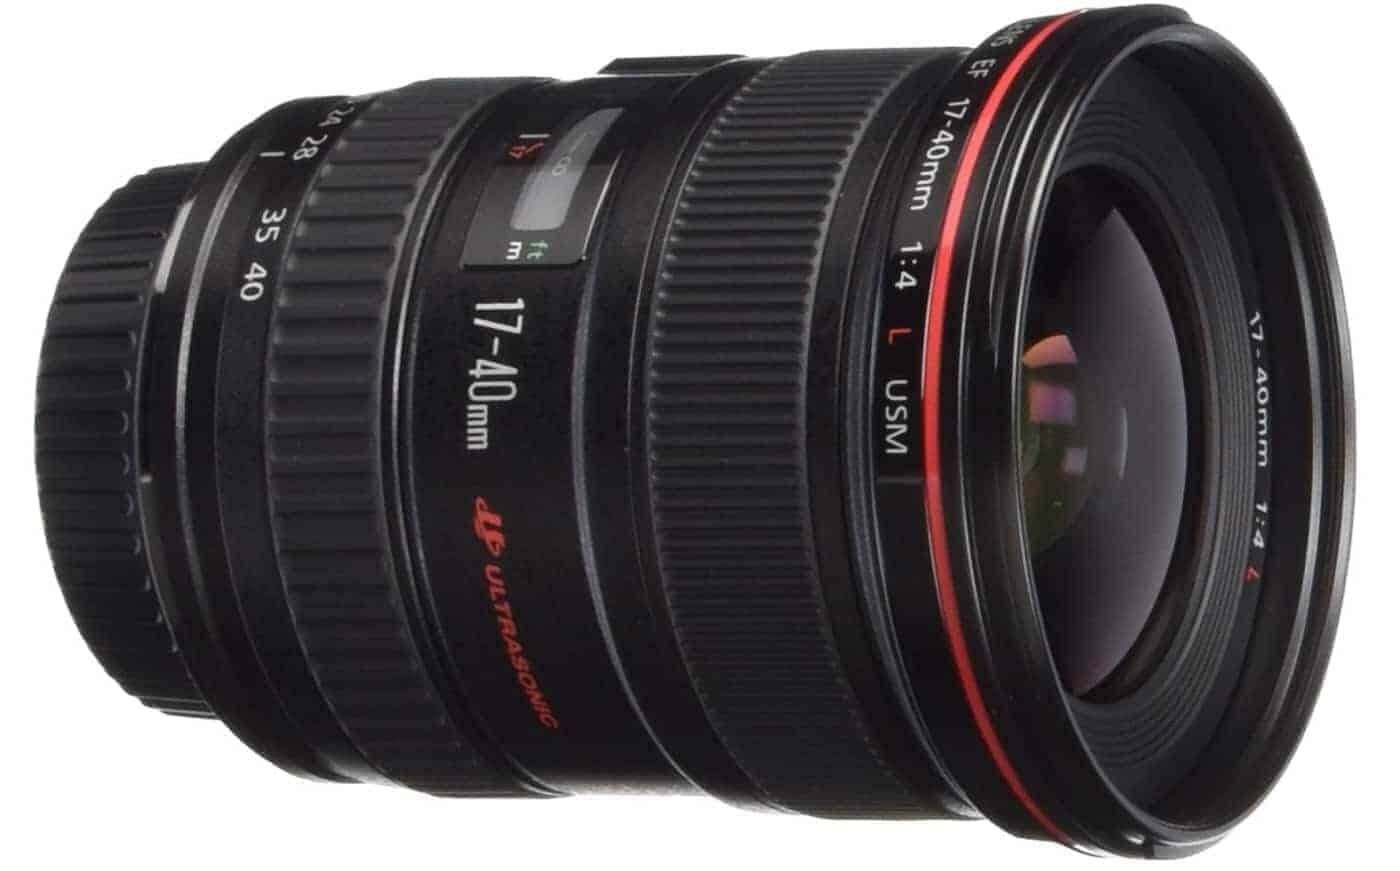 Best Canon Landscape Lenses Compared 6 Top Picks In 2019